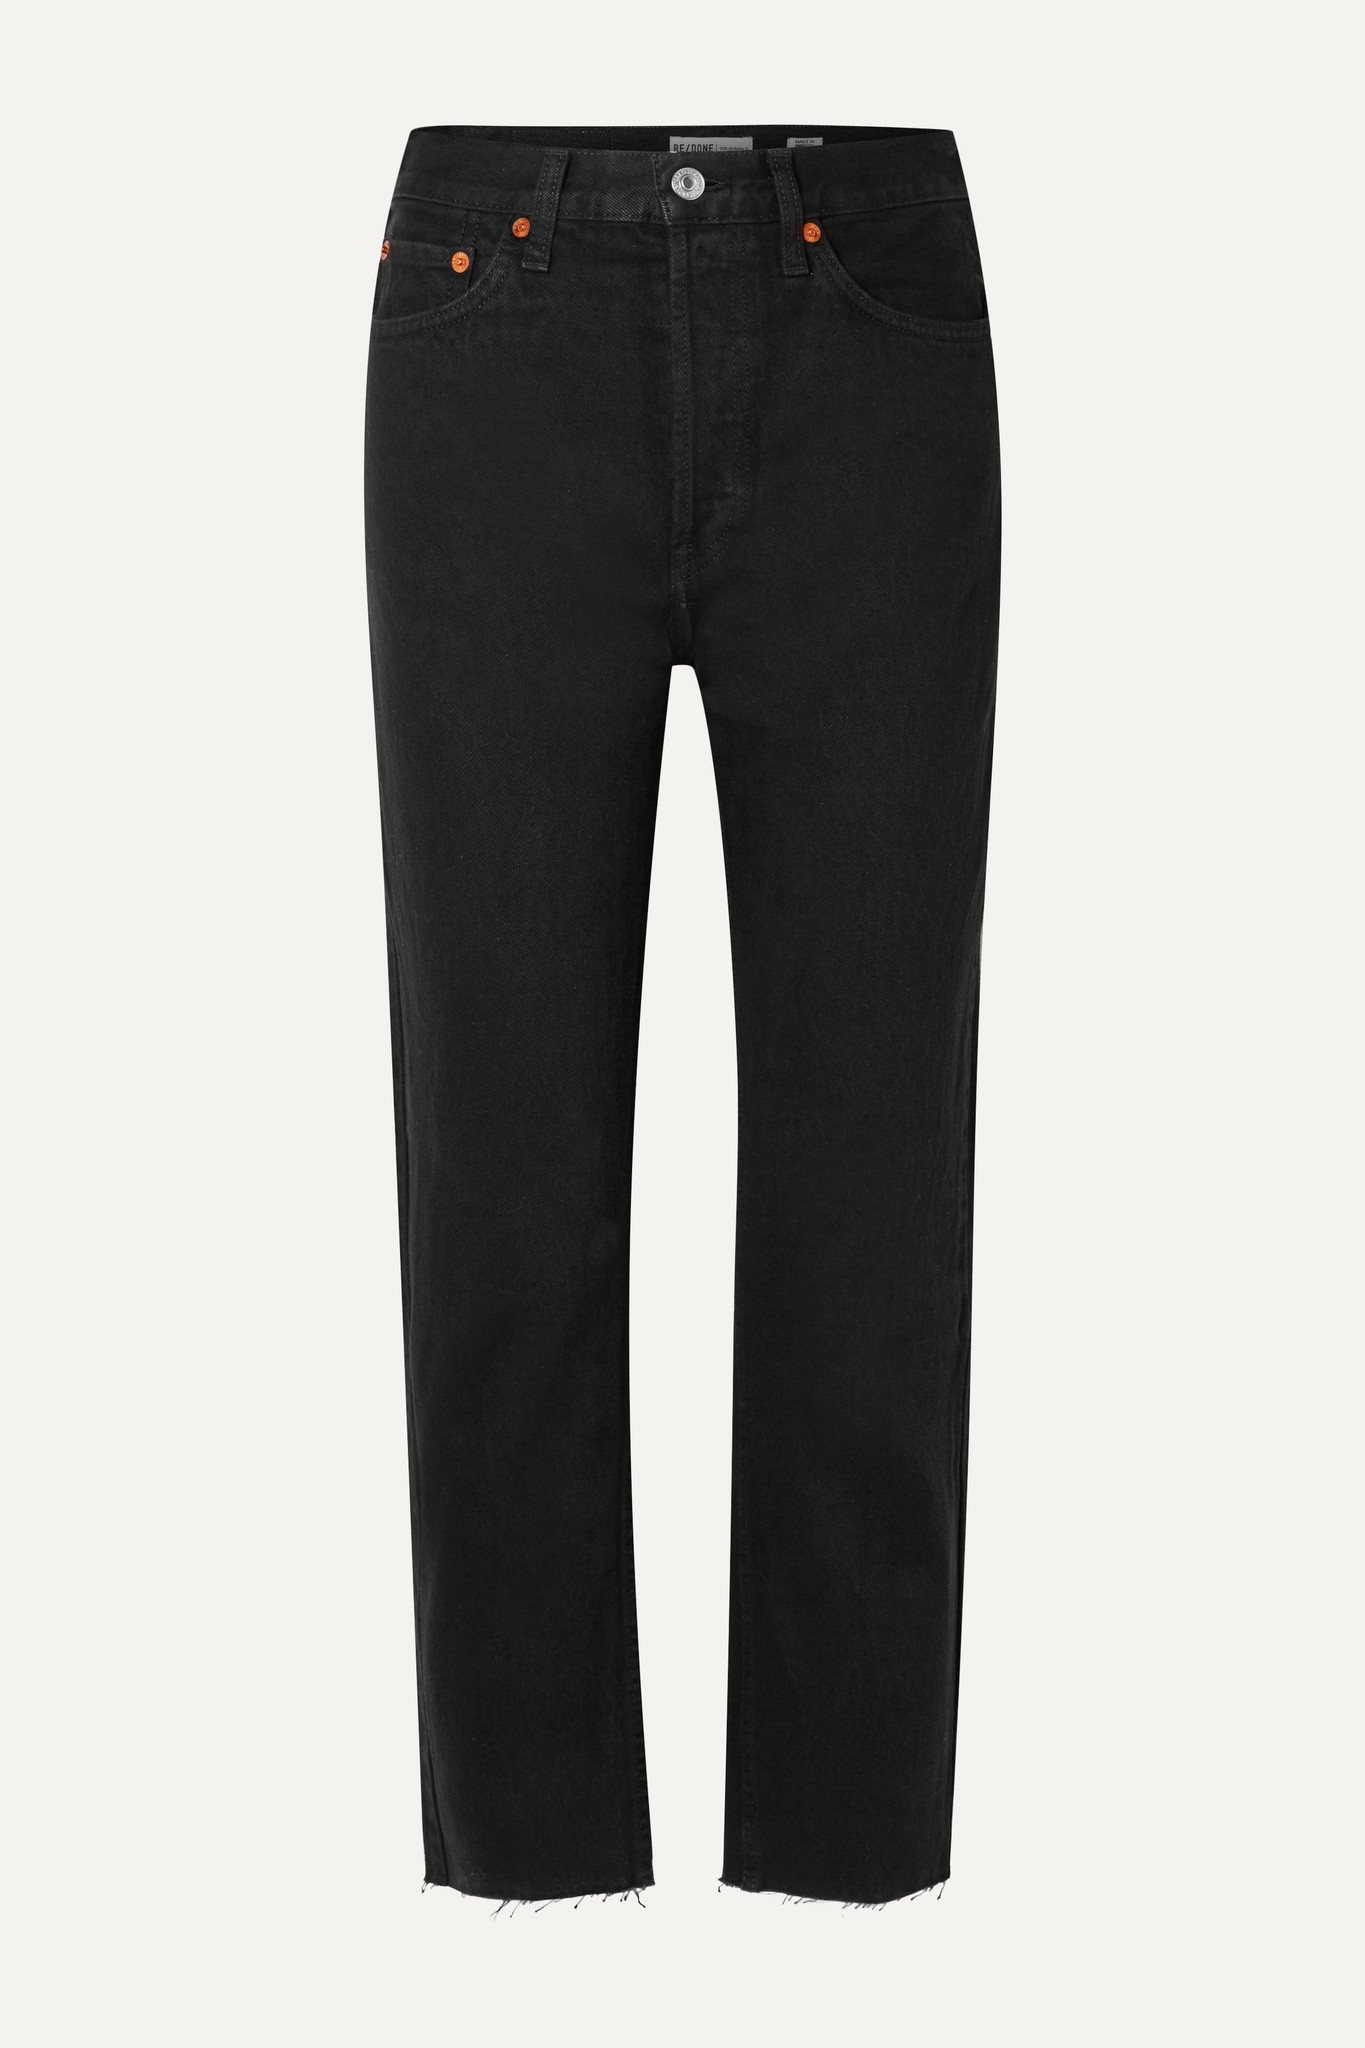 RE/DONE - Originals Stove Pipe High-rise Straight-leg Jeans - Black - 31